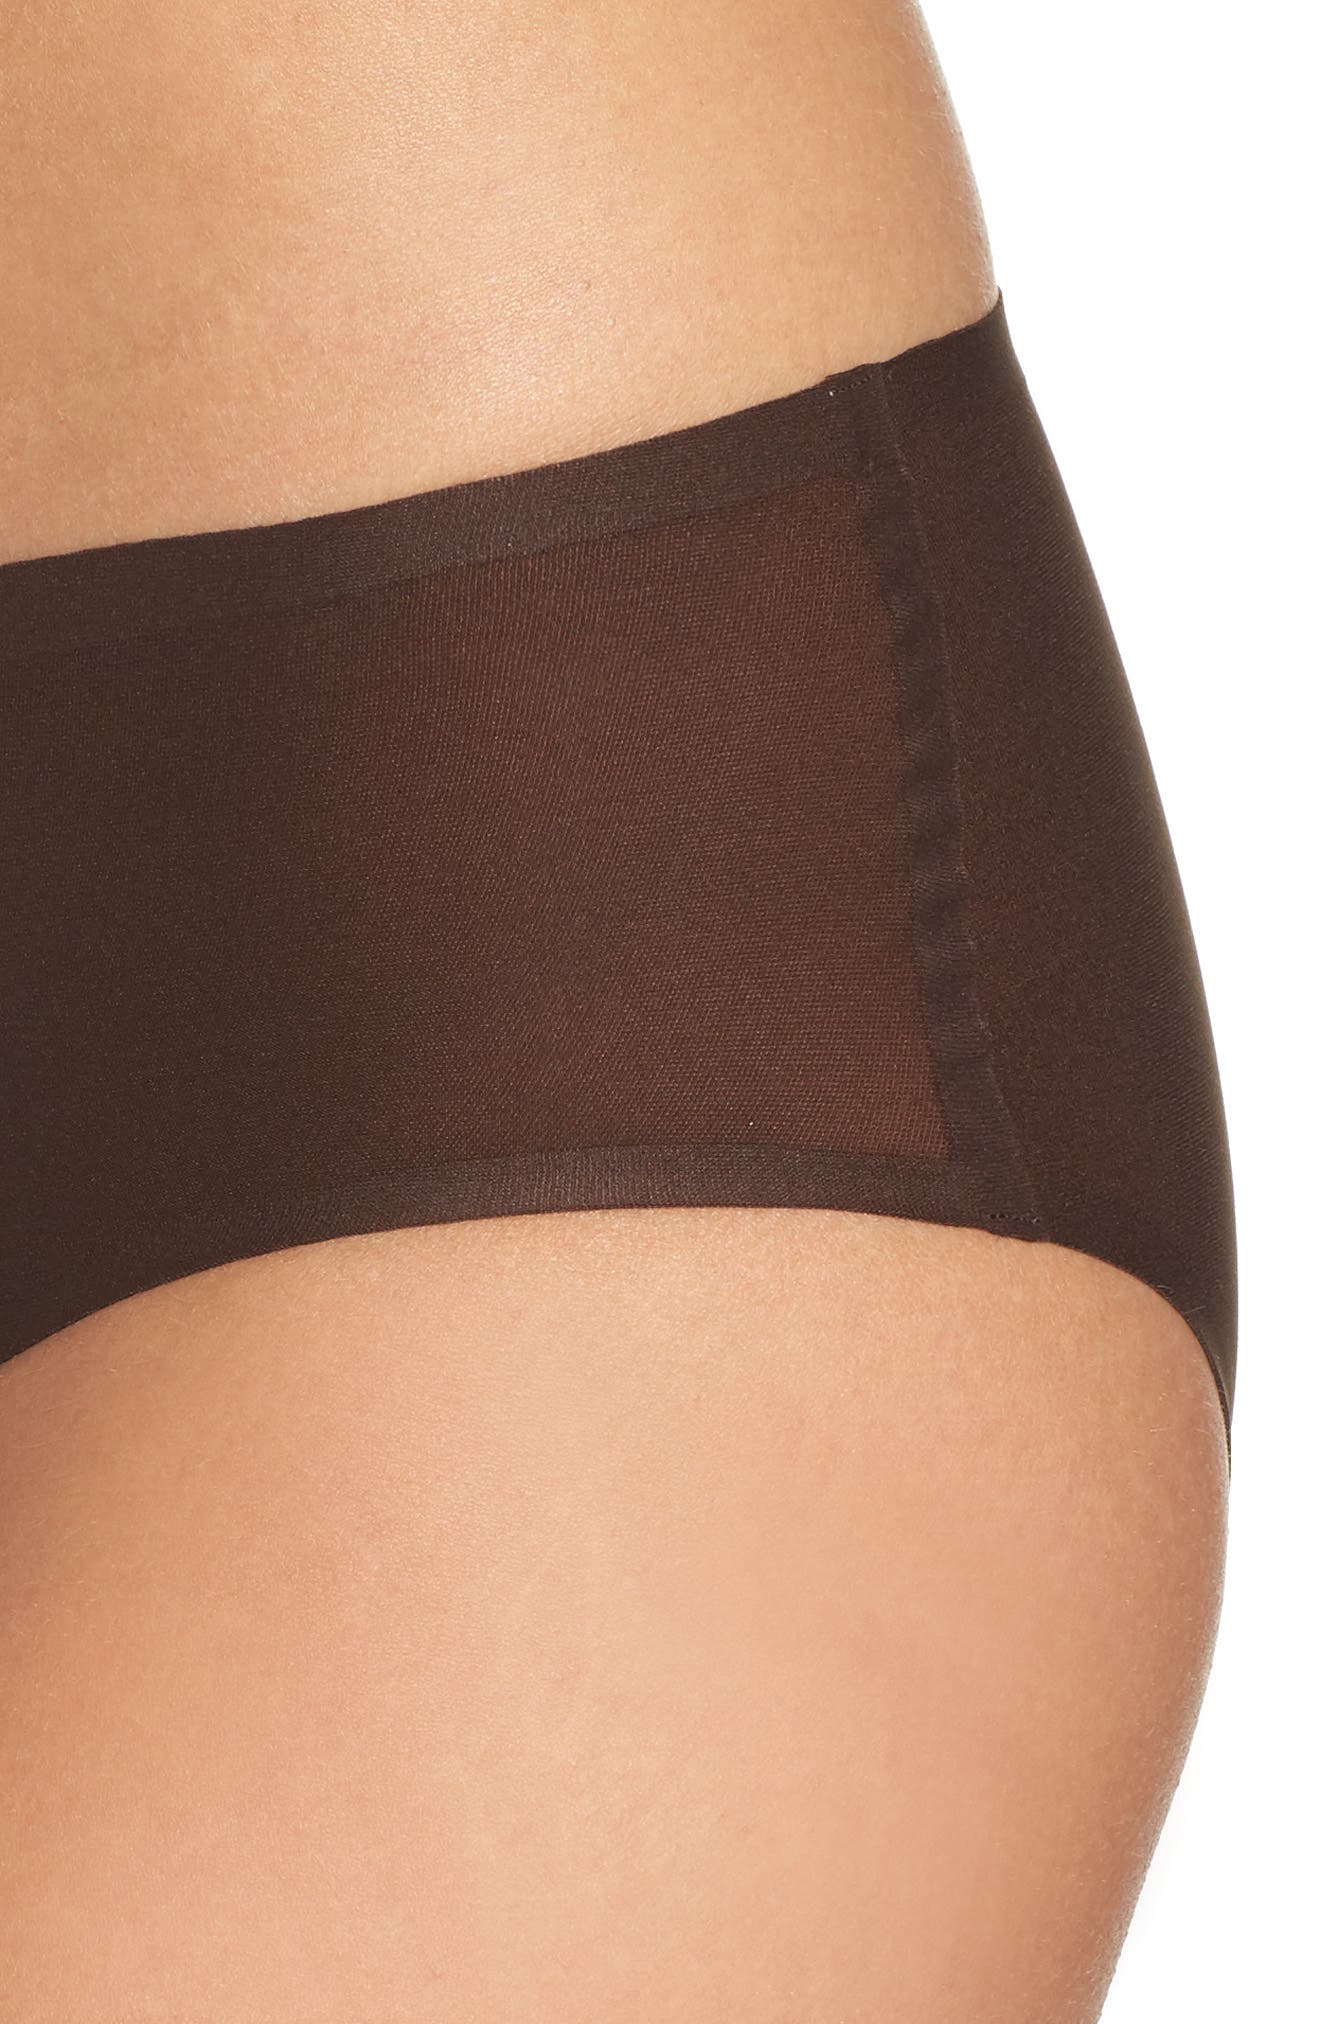 Soft Stretch Seamless Hipster Panties,                             Alternate thumbnail 4, color,                             BROWN